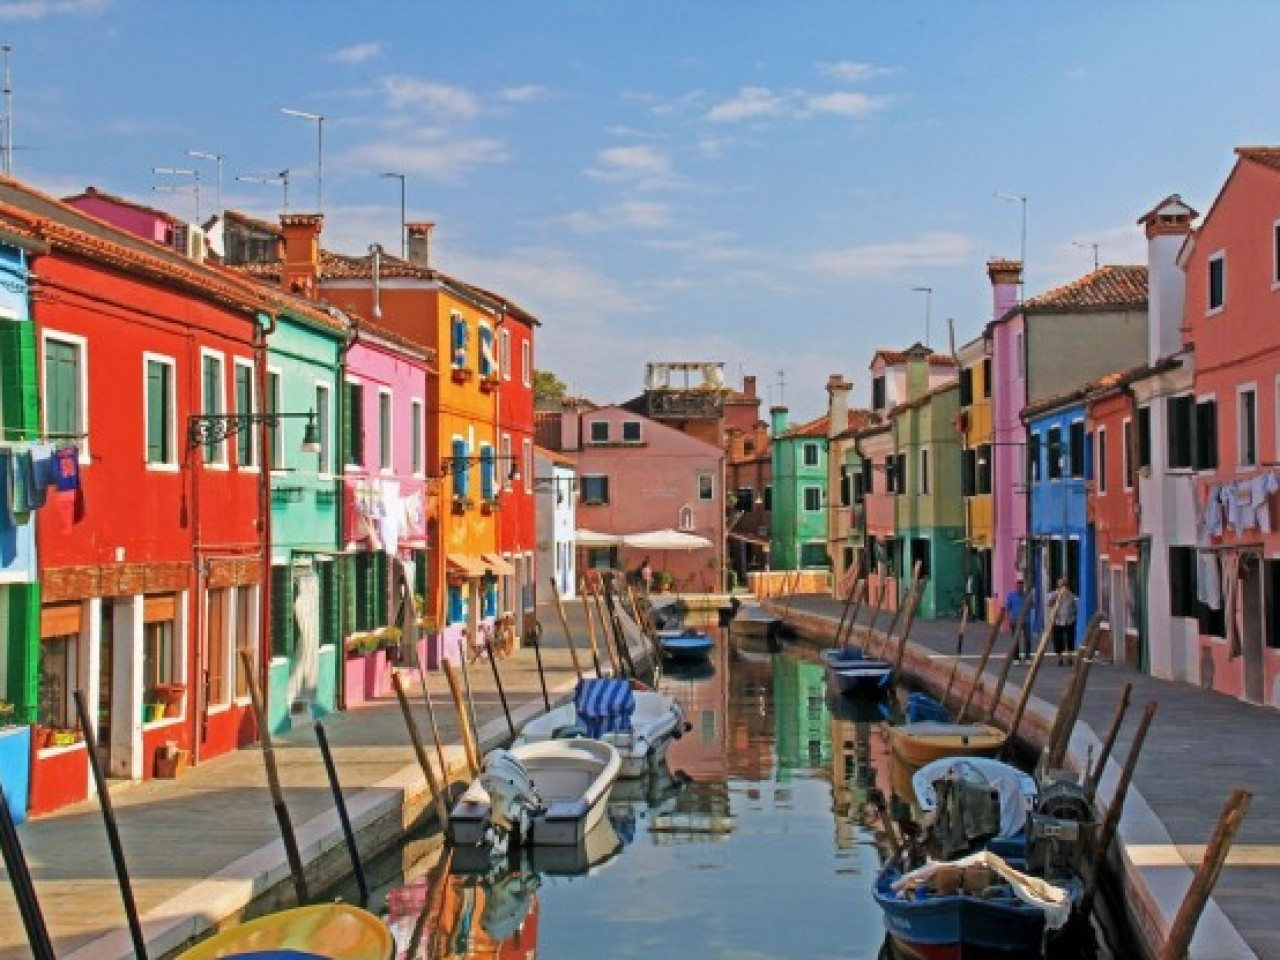 Murano, Burano and Torcello